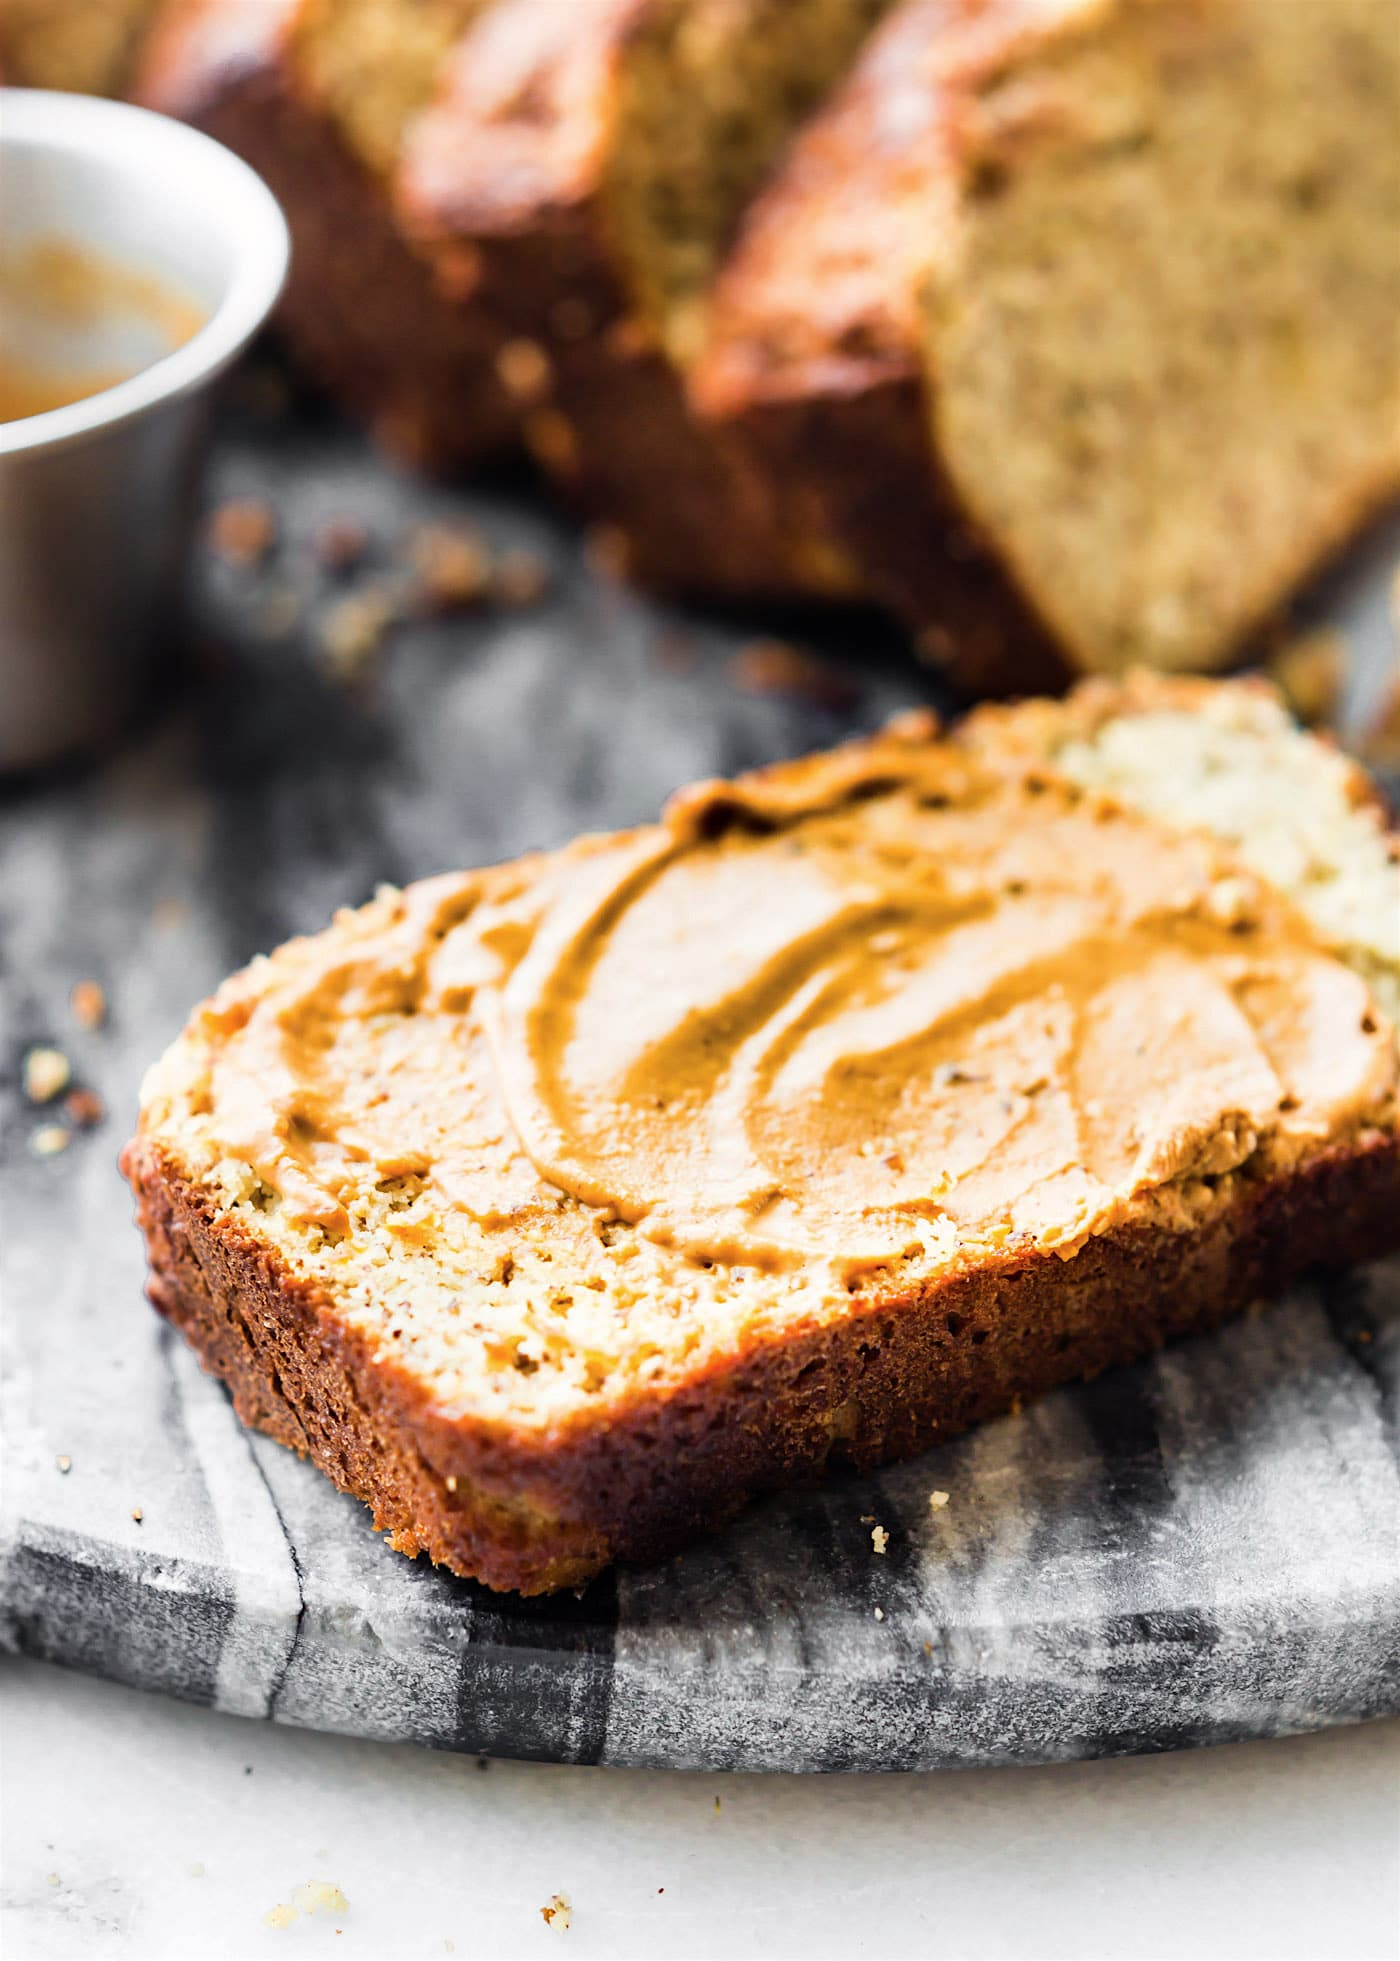 This simple and delicious cinnamon almond flour bread is aversatile paleo bread recipe you're whole family will love! Made with few ingredients; almond flour, flax seed, cinnamon, and eggs to name a few. A nourishing wholesome bread for breakfast or snacking.